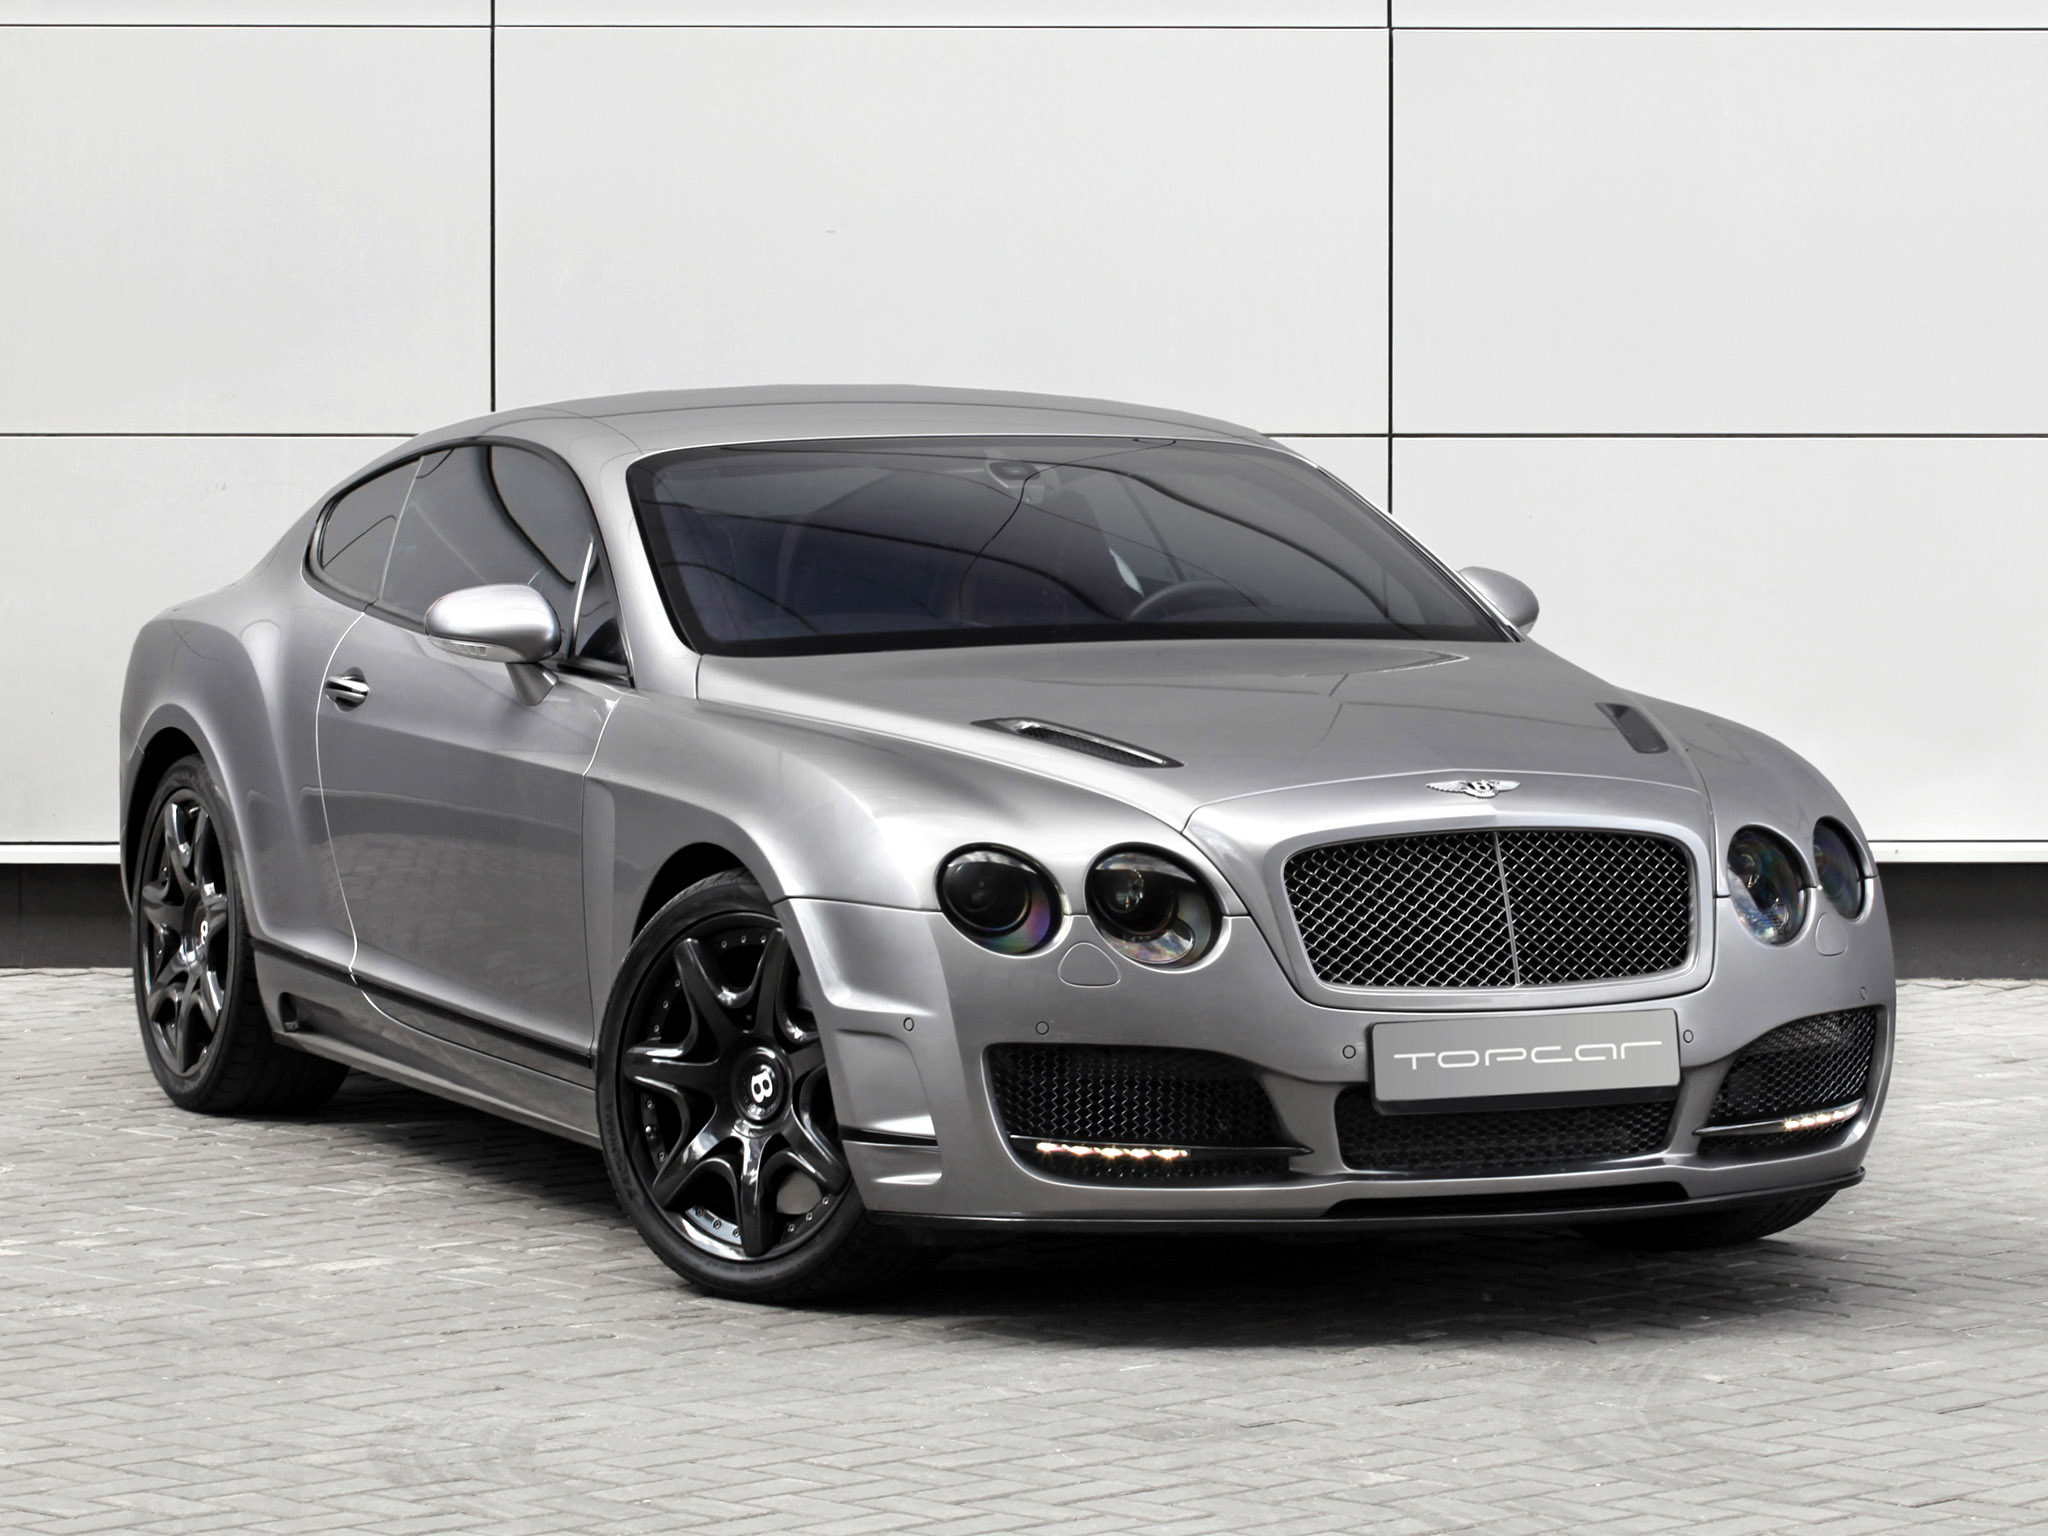 2009 Bentley Continental Gt #20